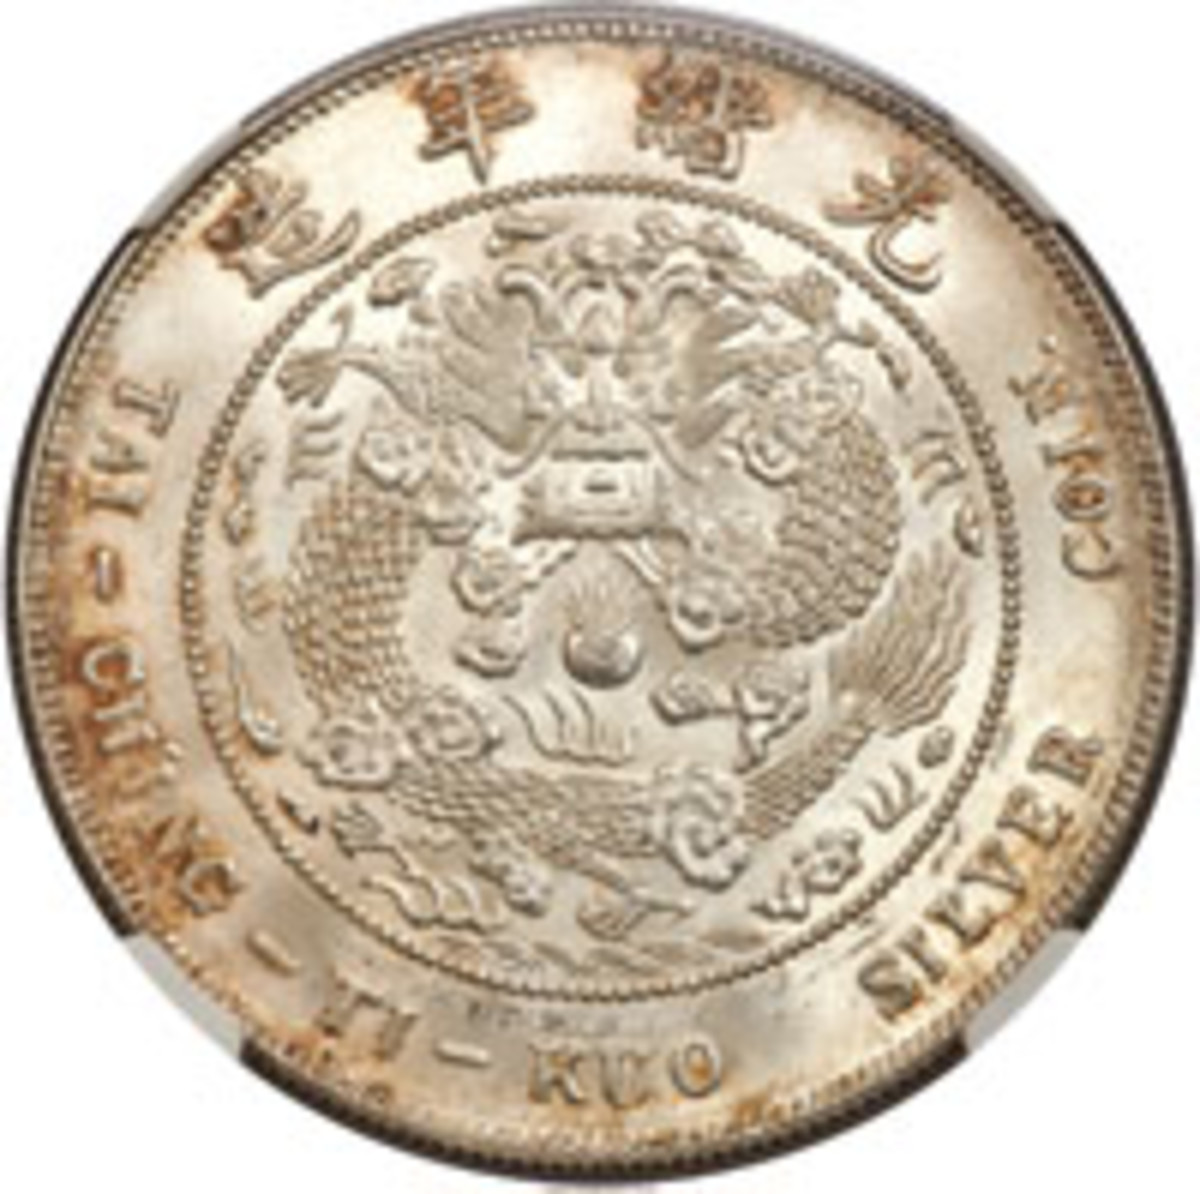 Choice Imperial Chinese Kuang-hsu dollar (ND, 1908) struck at the Tientsin Mint, KM-Y14, that fetched $31,200. (Image courtesy and © www.ha.com)